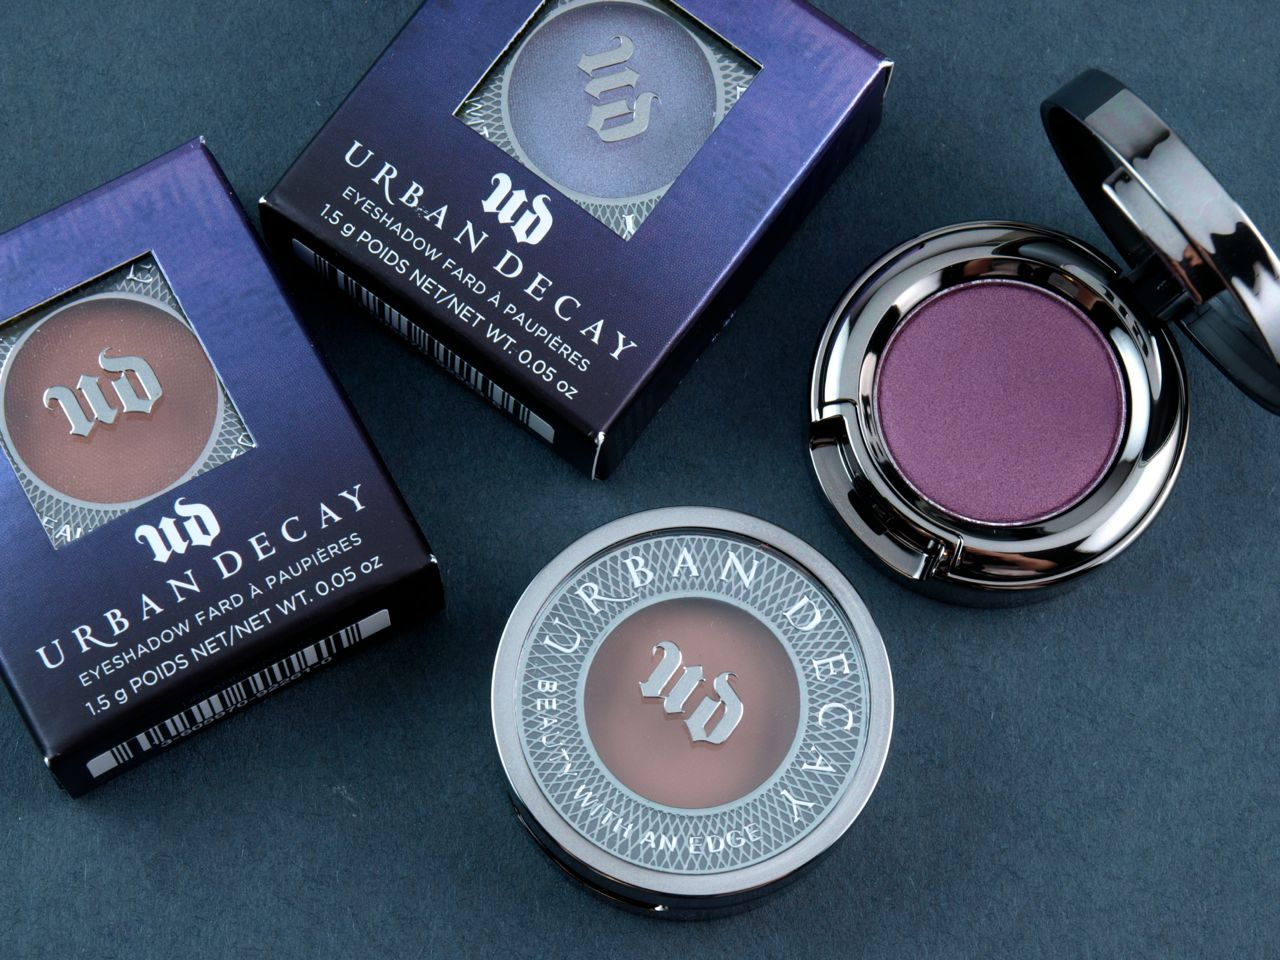 Urban Decay Summer 2015 New Single Eyeshadow Shades: Review and Swatches